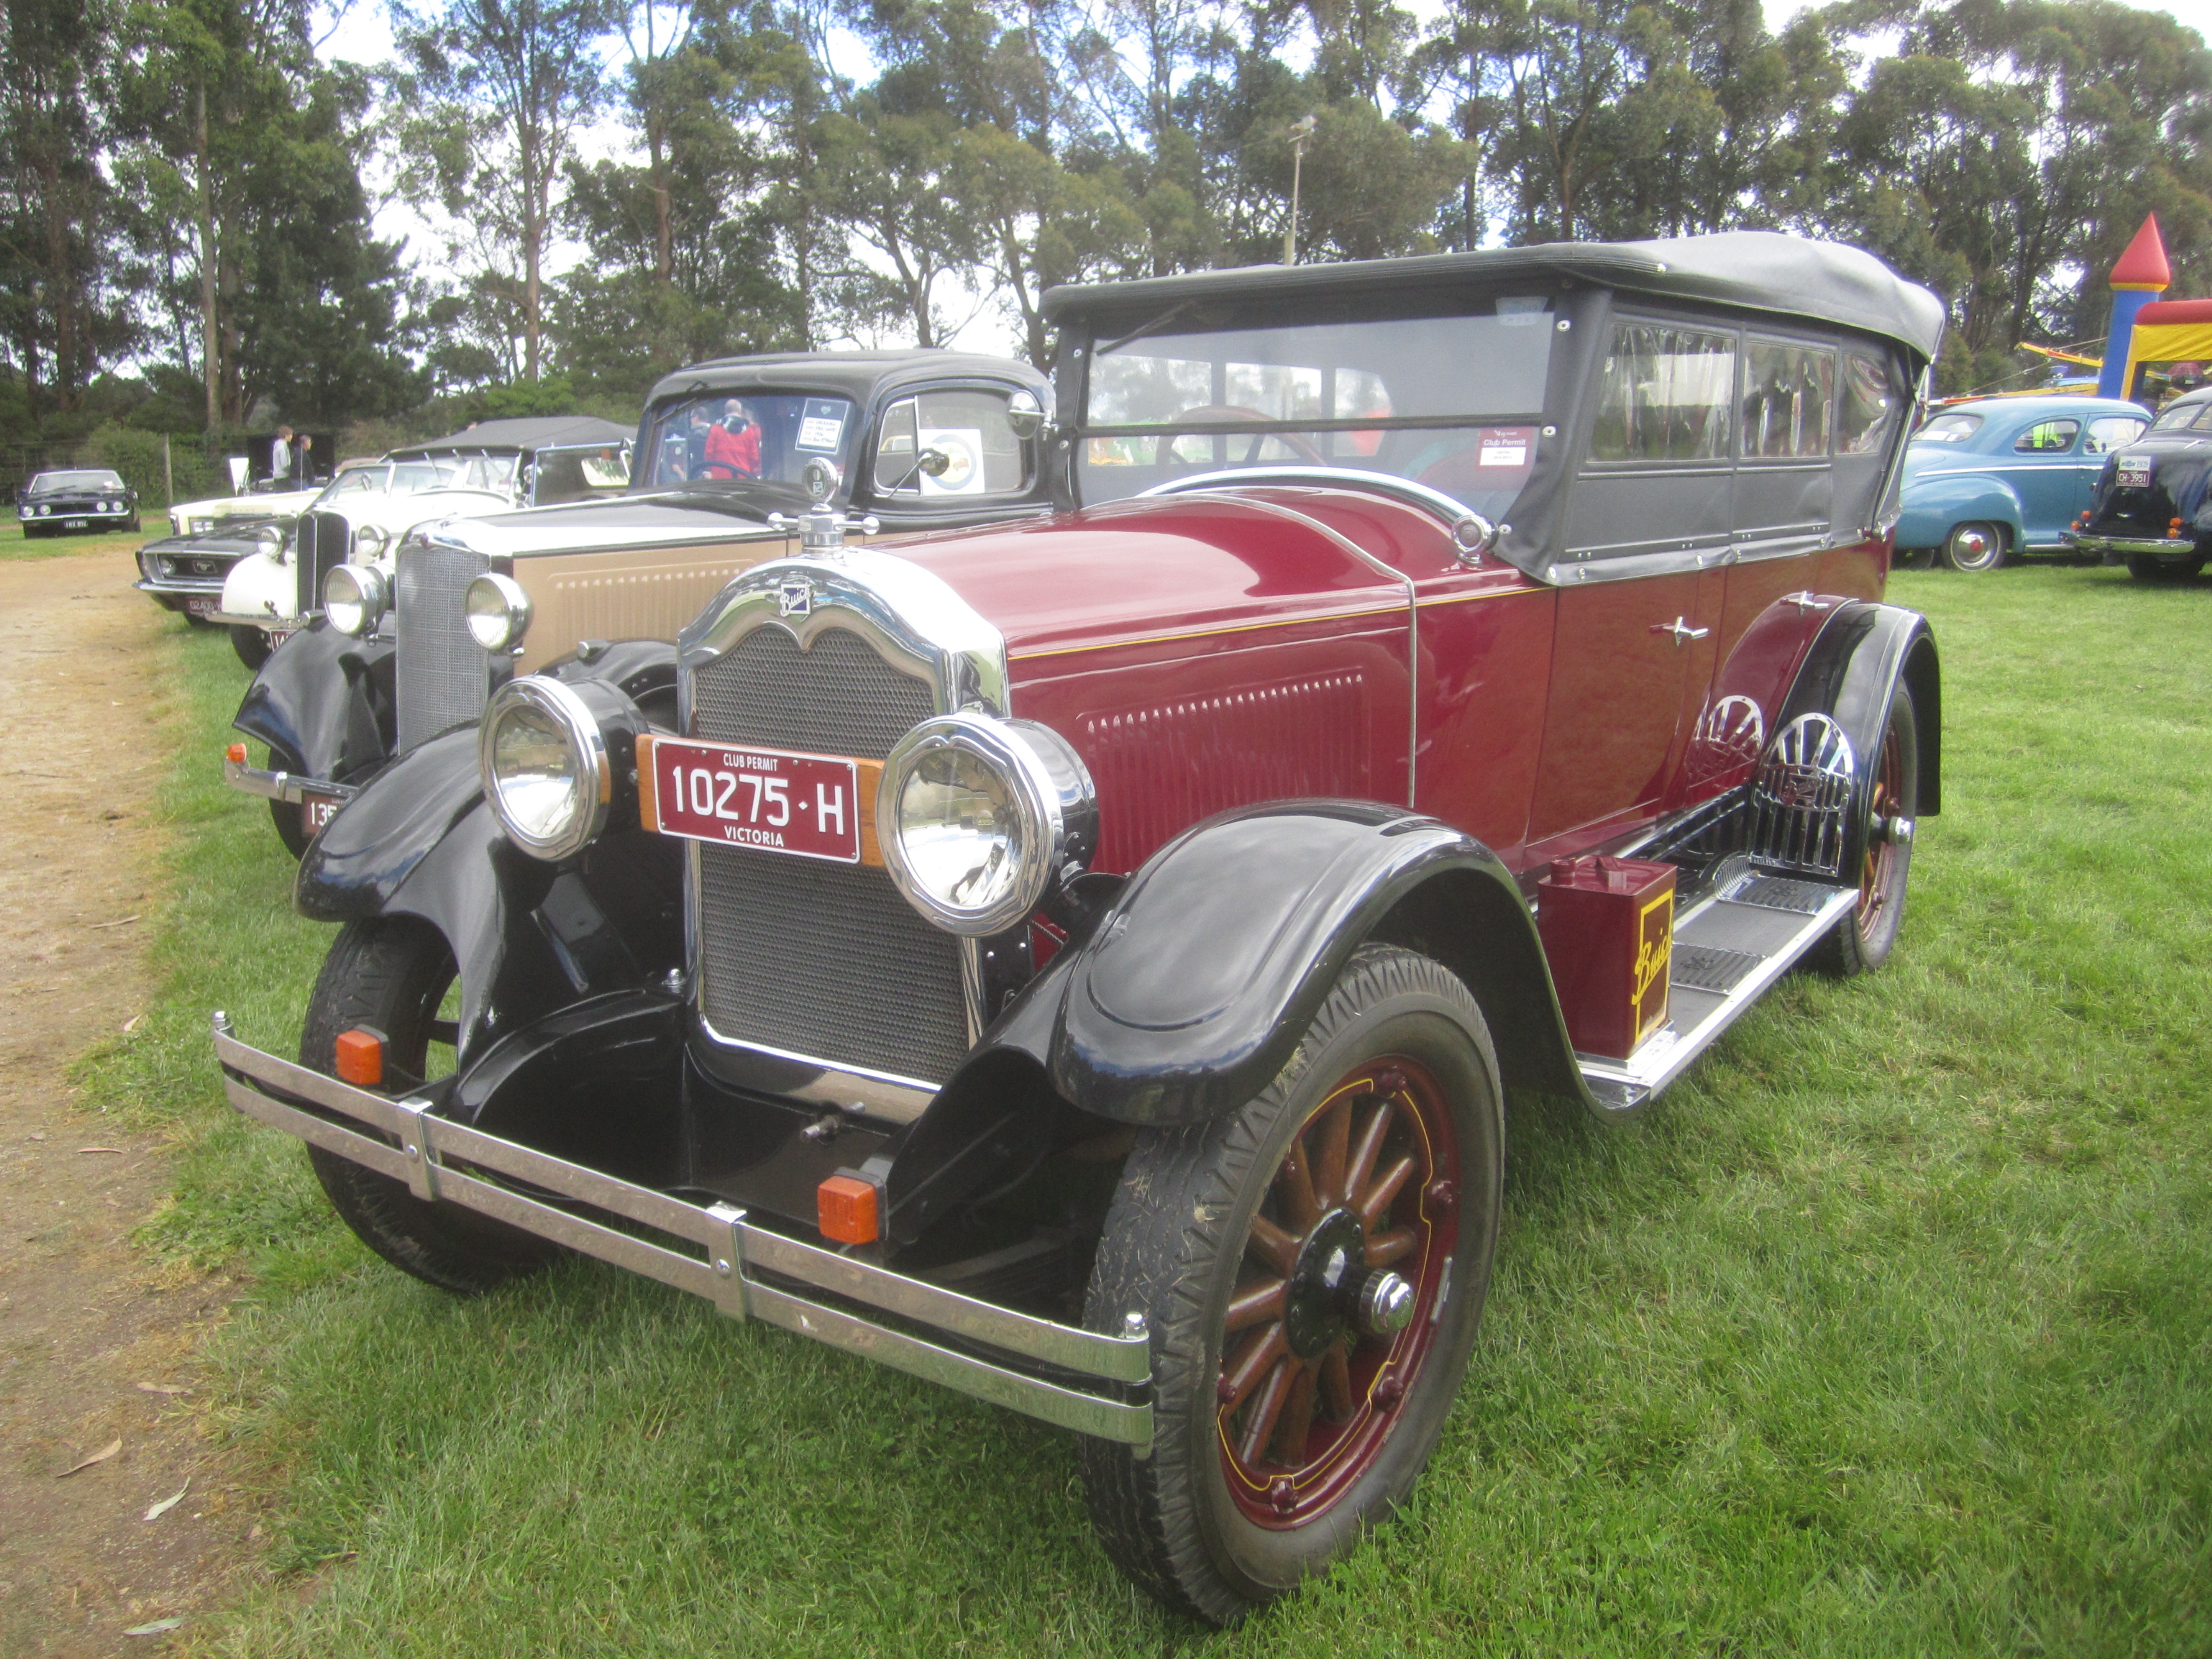 FWD Sucoe also Rupp also File 1927 Buick Master Six Tourer besides 4917366690 furthermore 885 Cylinder Head 2 7 Seta Stroker Engine 316714. on engine cylinder